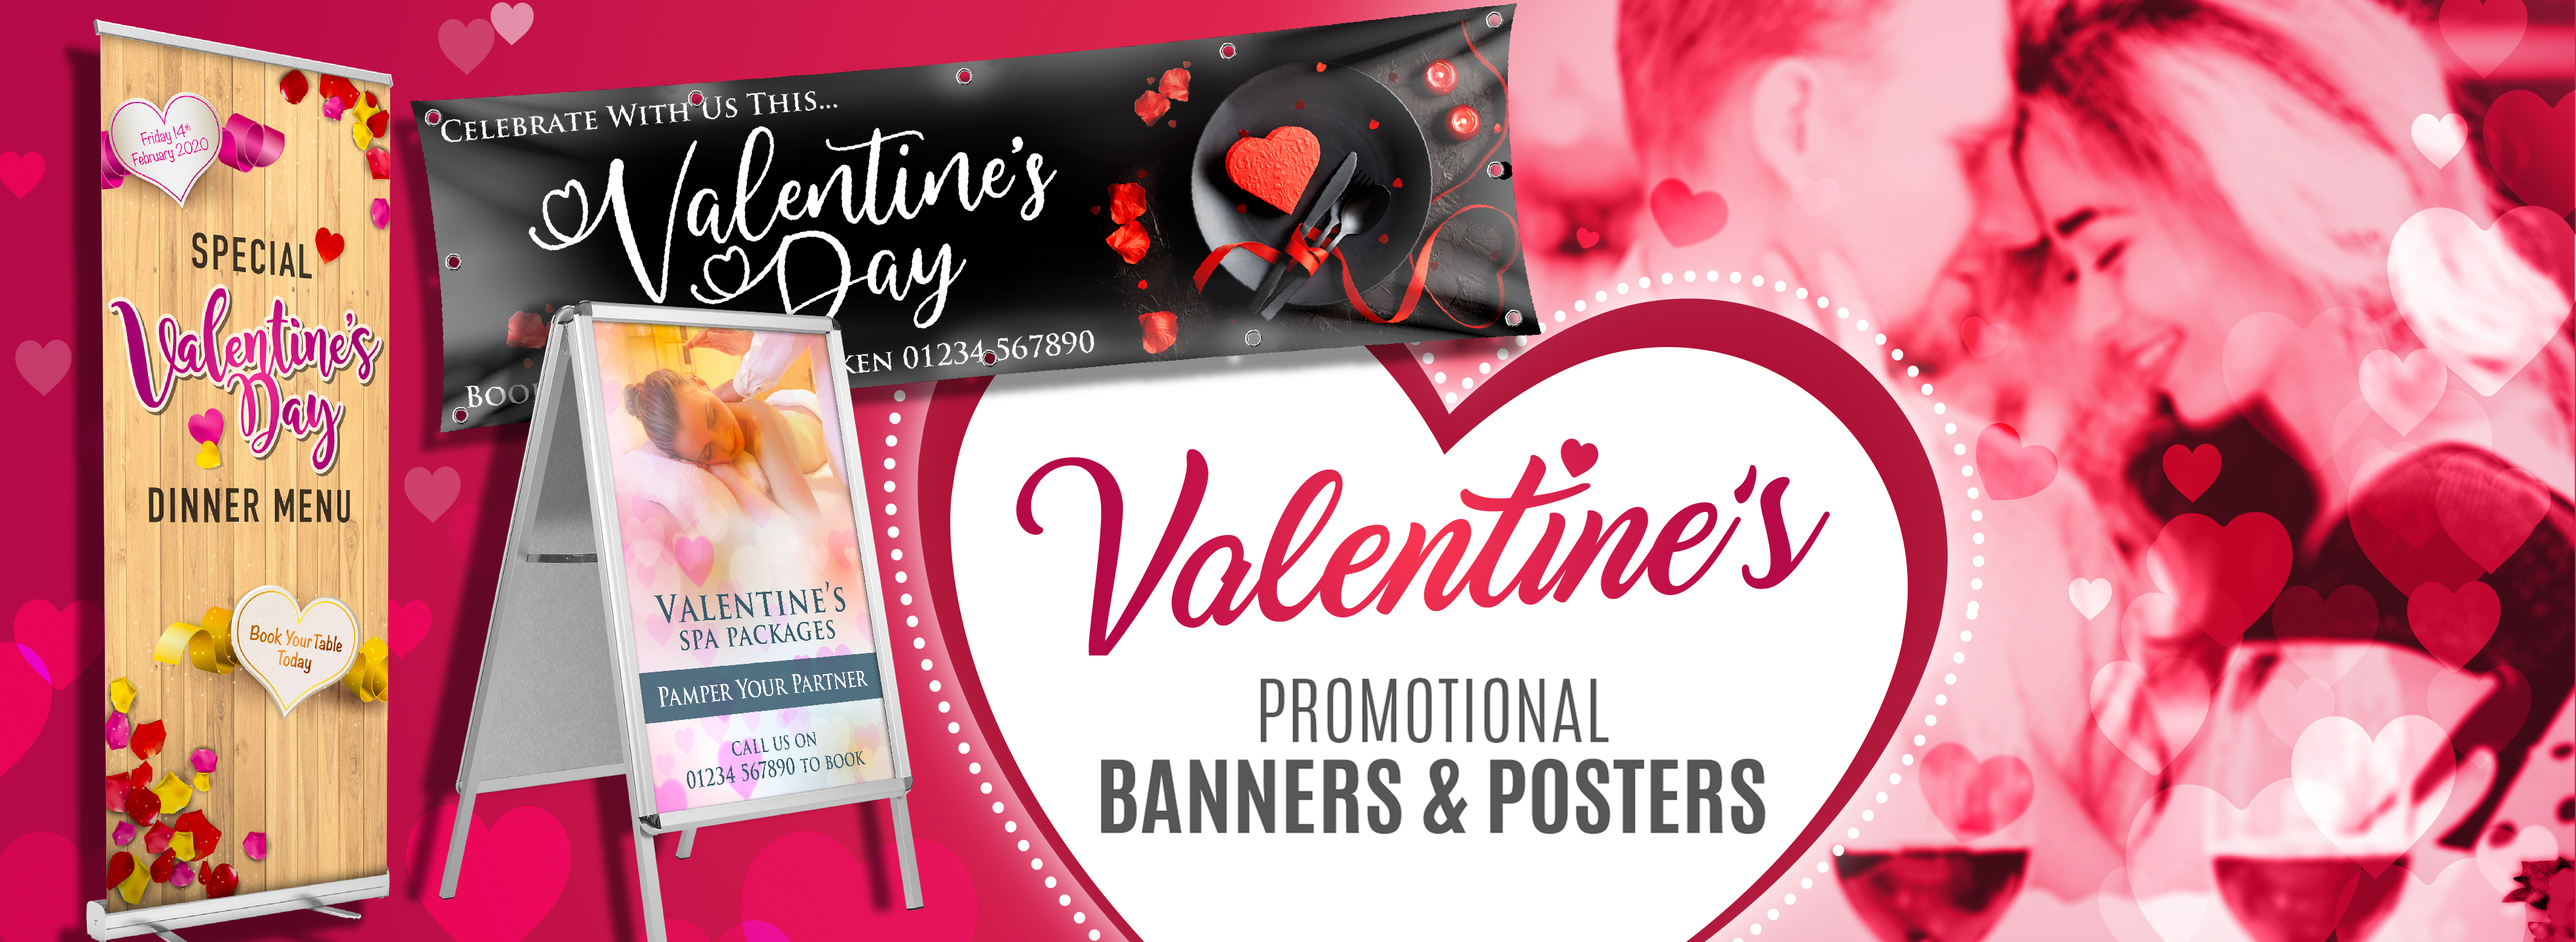 Valentines Day Promotional Material